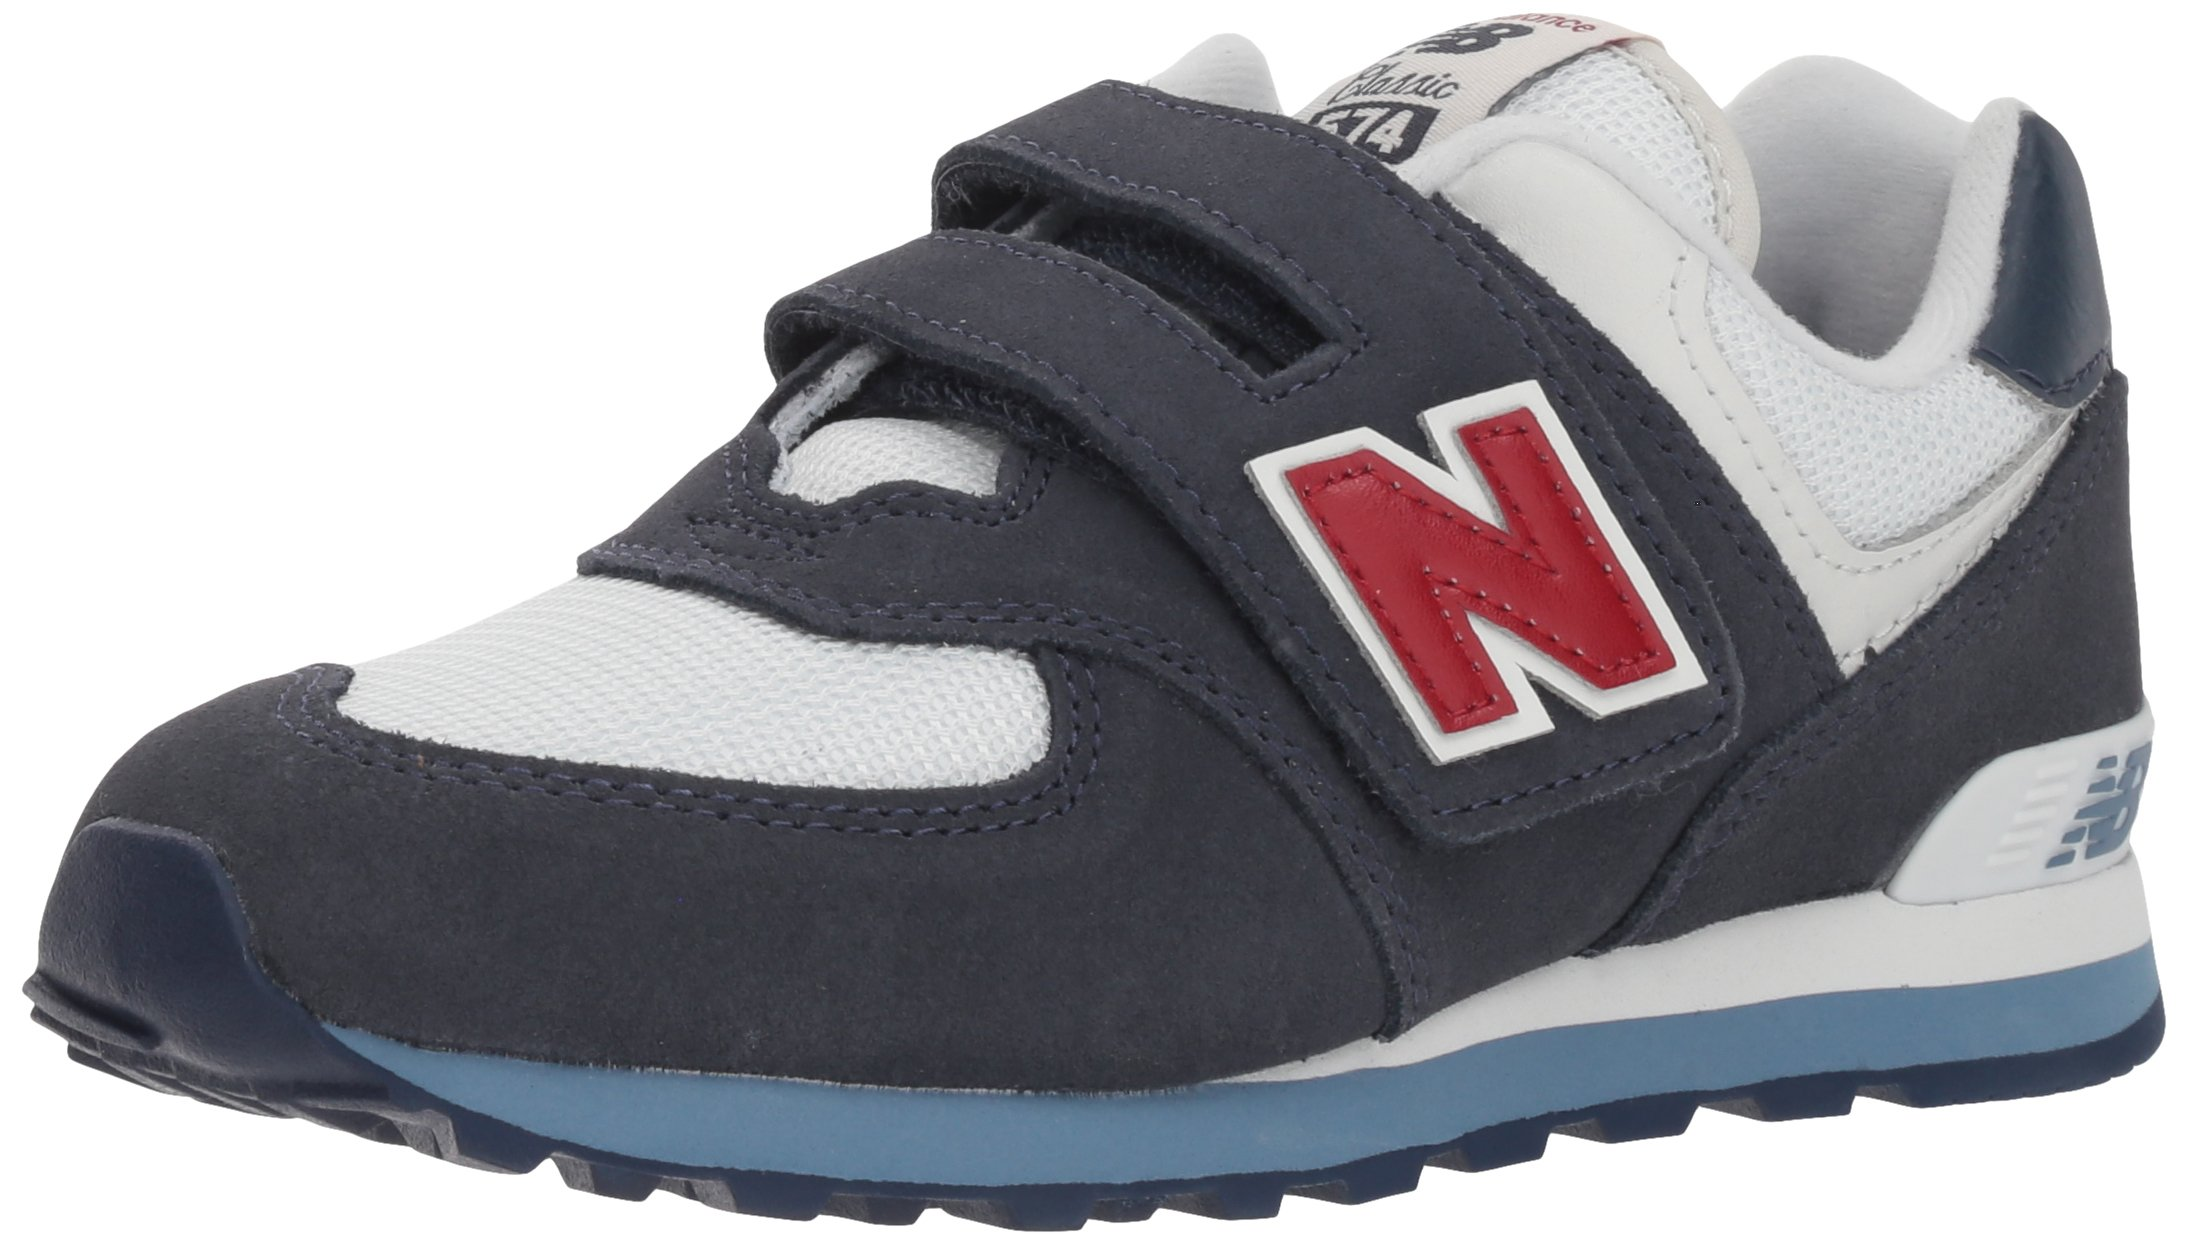 New Balance Boys' 574v1 Essentials Hook and Loop Sneaker, Navy/red, 7 M US Toddler